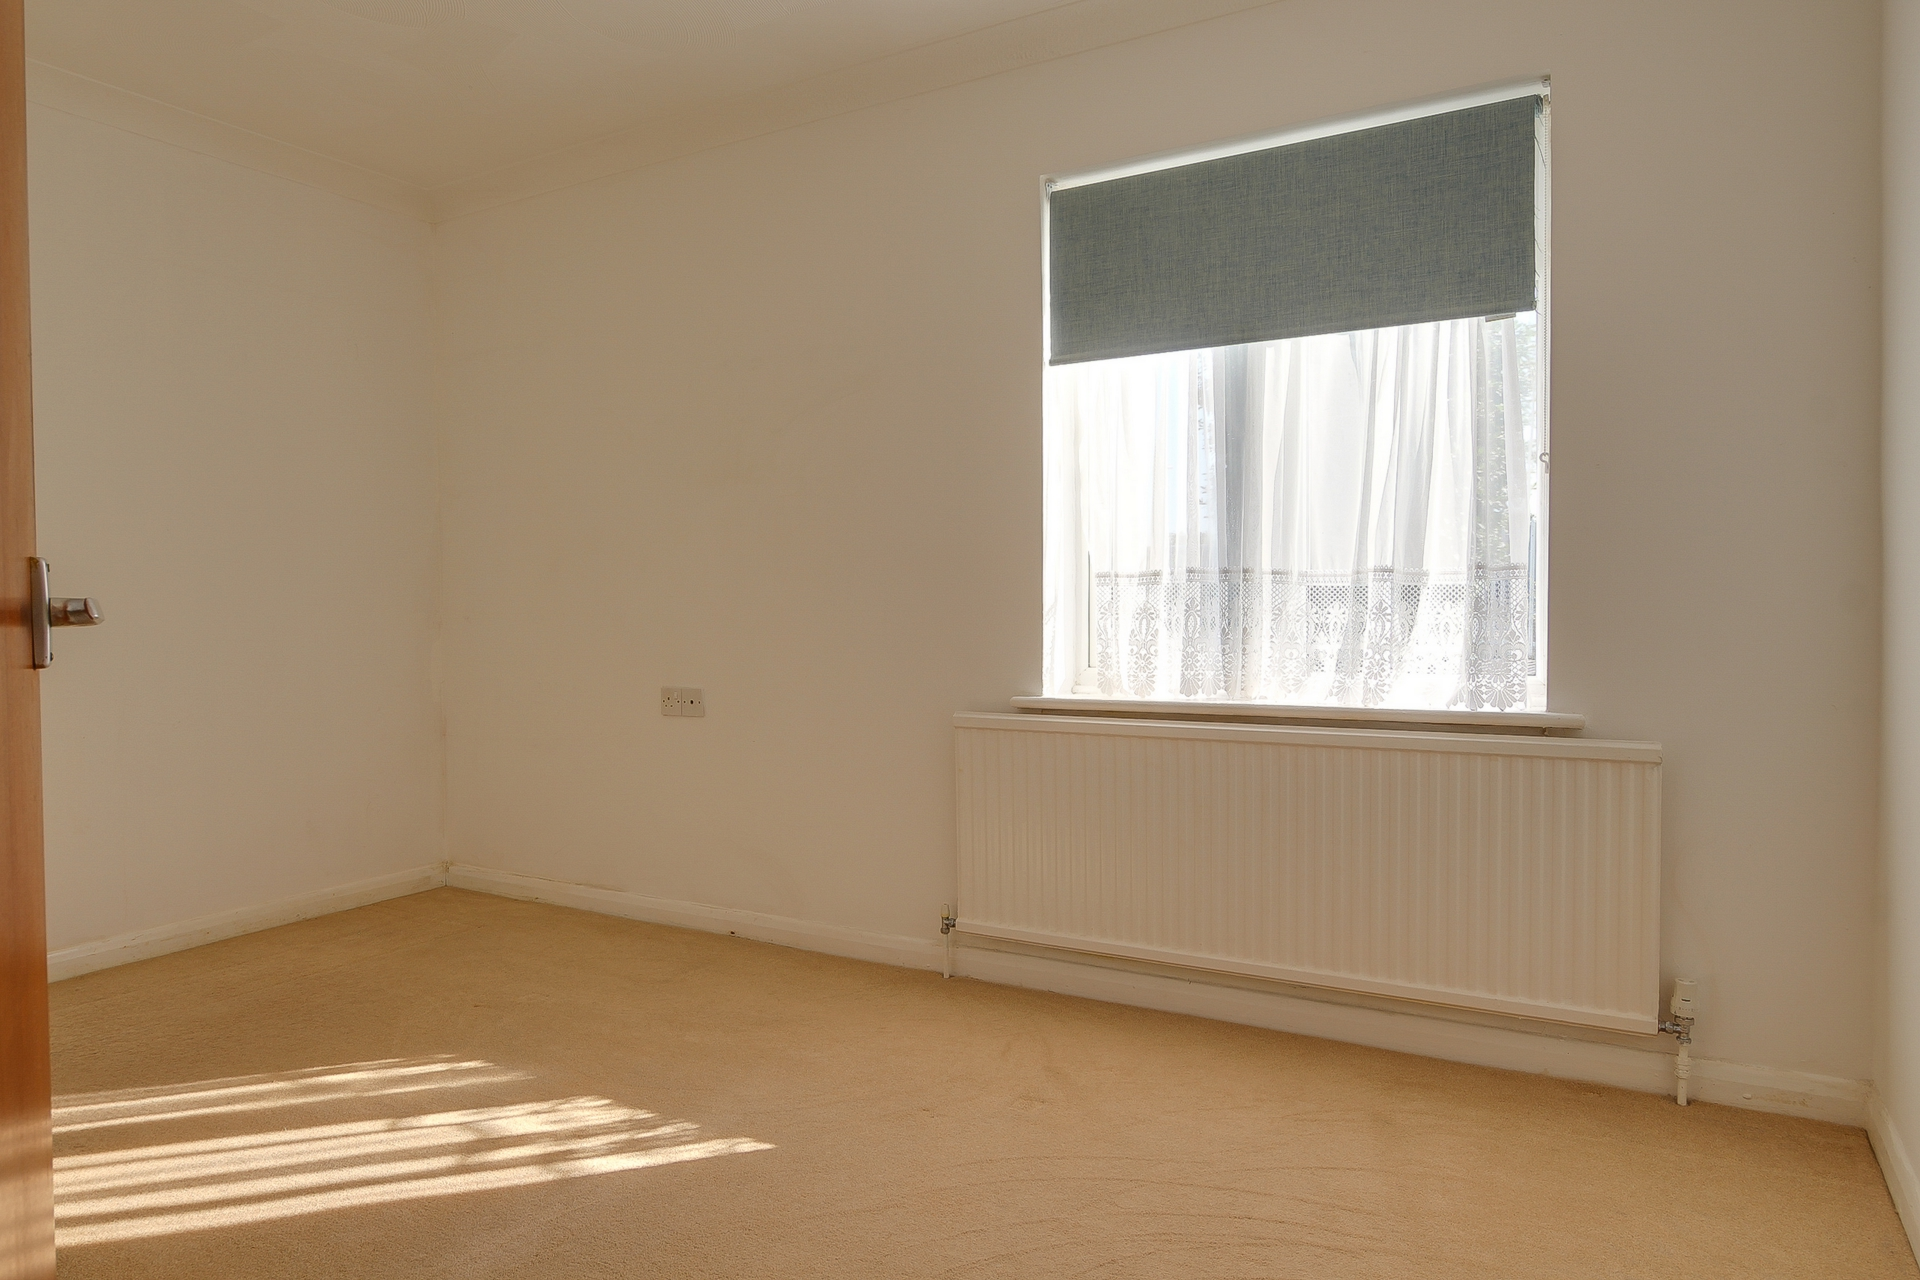 3 bed bungalow to rent in Cheesmans Close, Minster, CT12 8